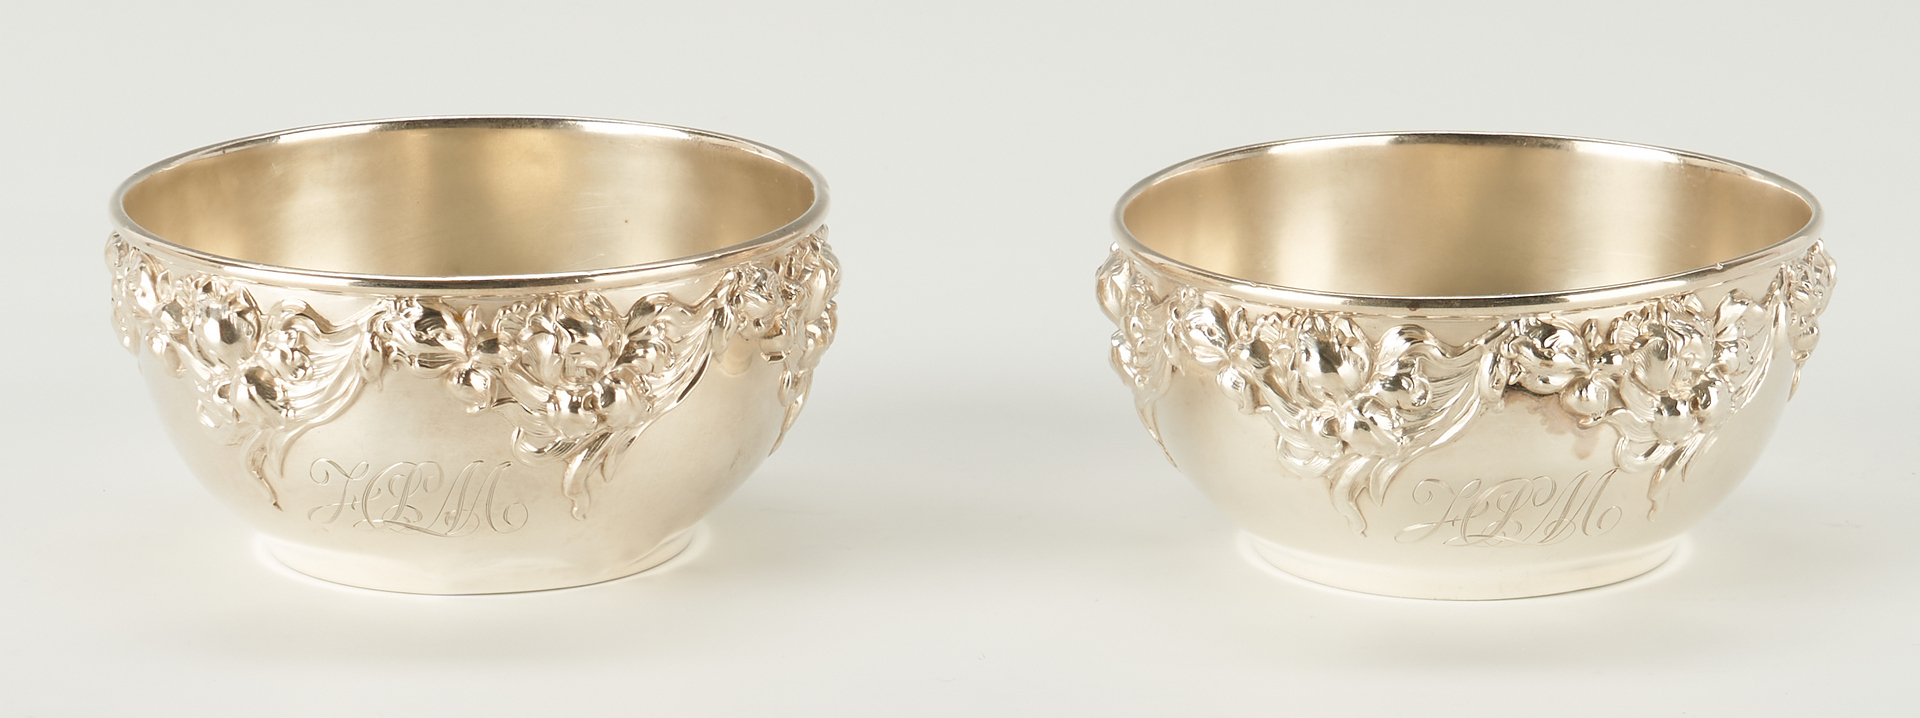 Lot 285: Set of 9 Wallace Sterling Silver Repousse Bowls